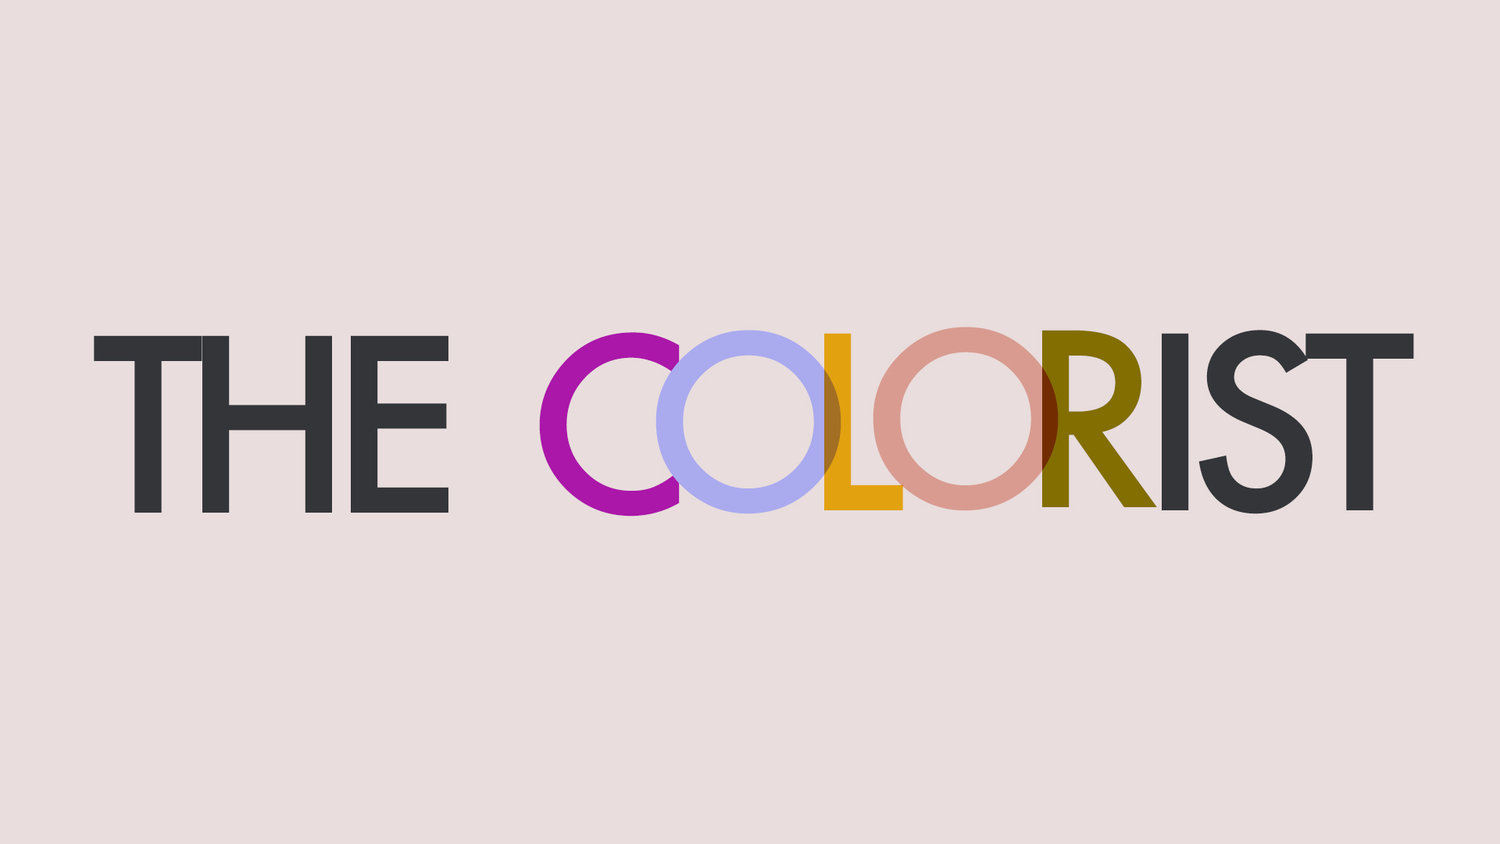 THE COLORIST: Color Strategy and Design Services for Fashion & Home